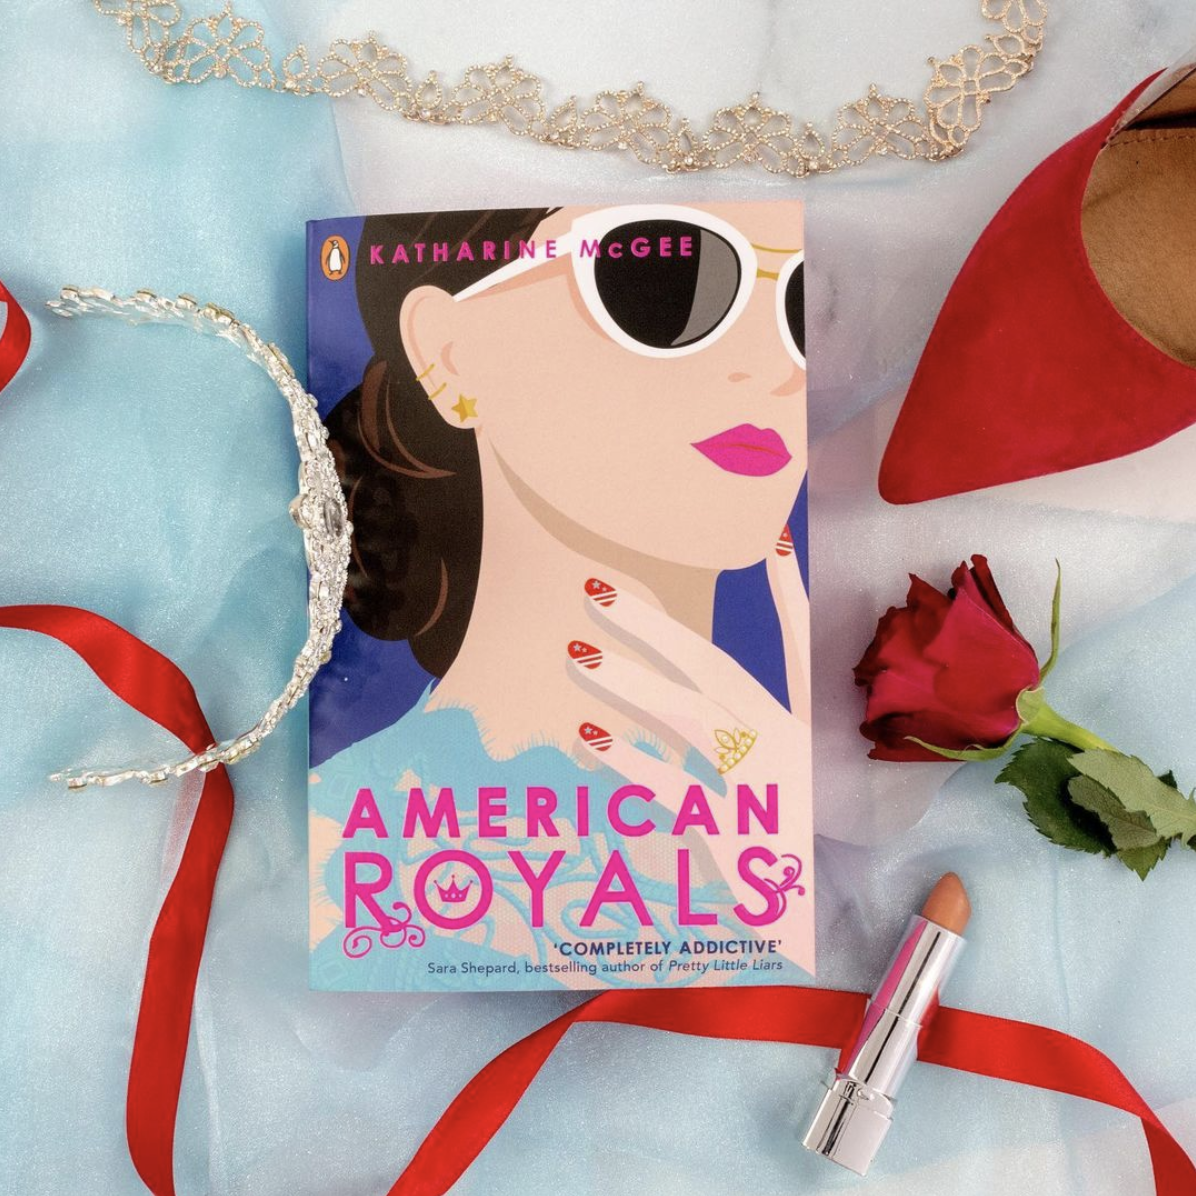 the book on a table surrounded by a crown, lipstick, a rose, and a shoe